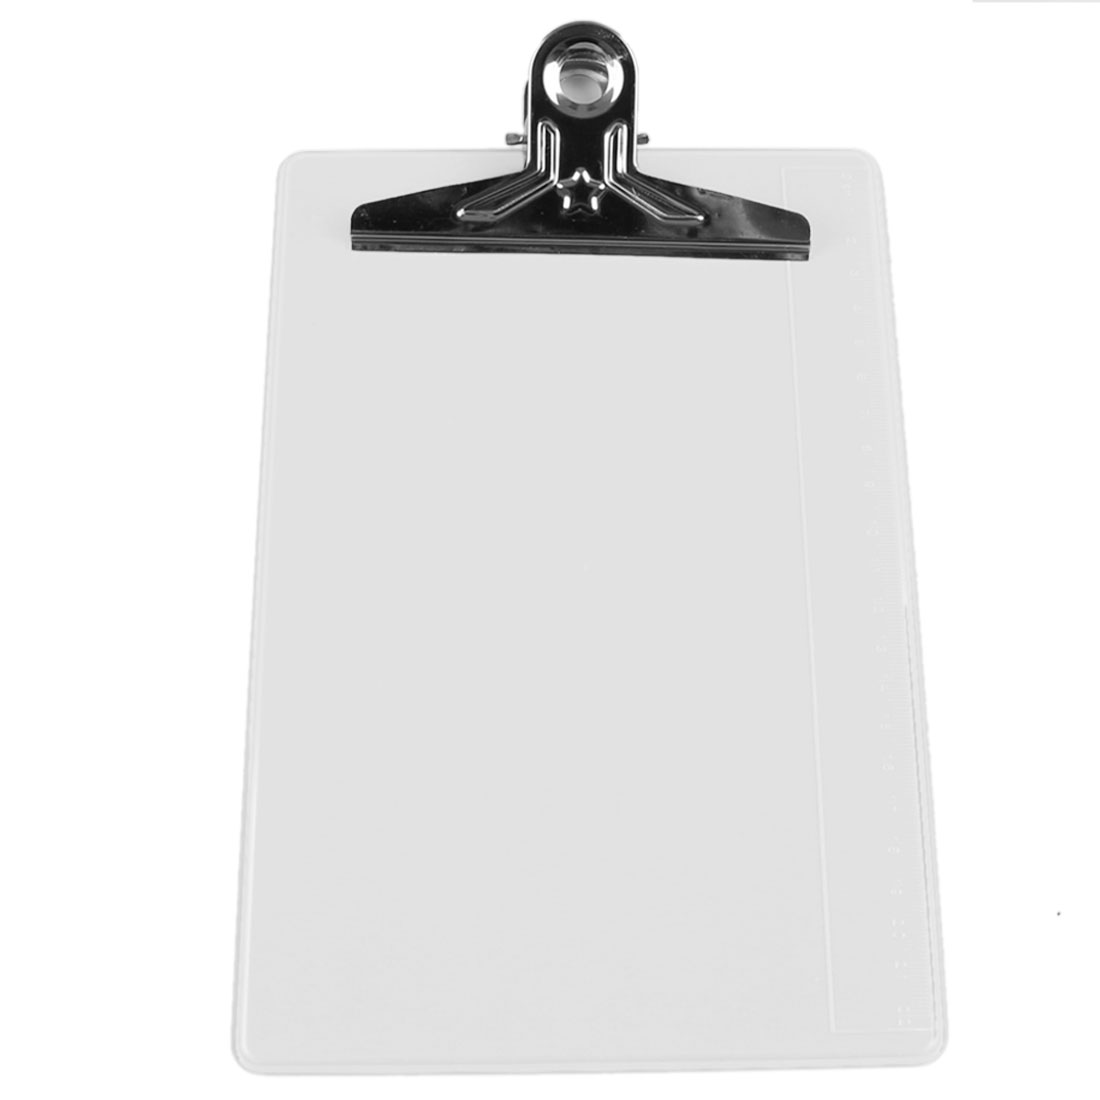 White Plastic Silver Tone Metal Clip Board File Notebook A5 Paper Clipboard